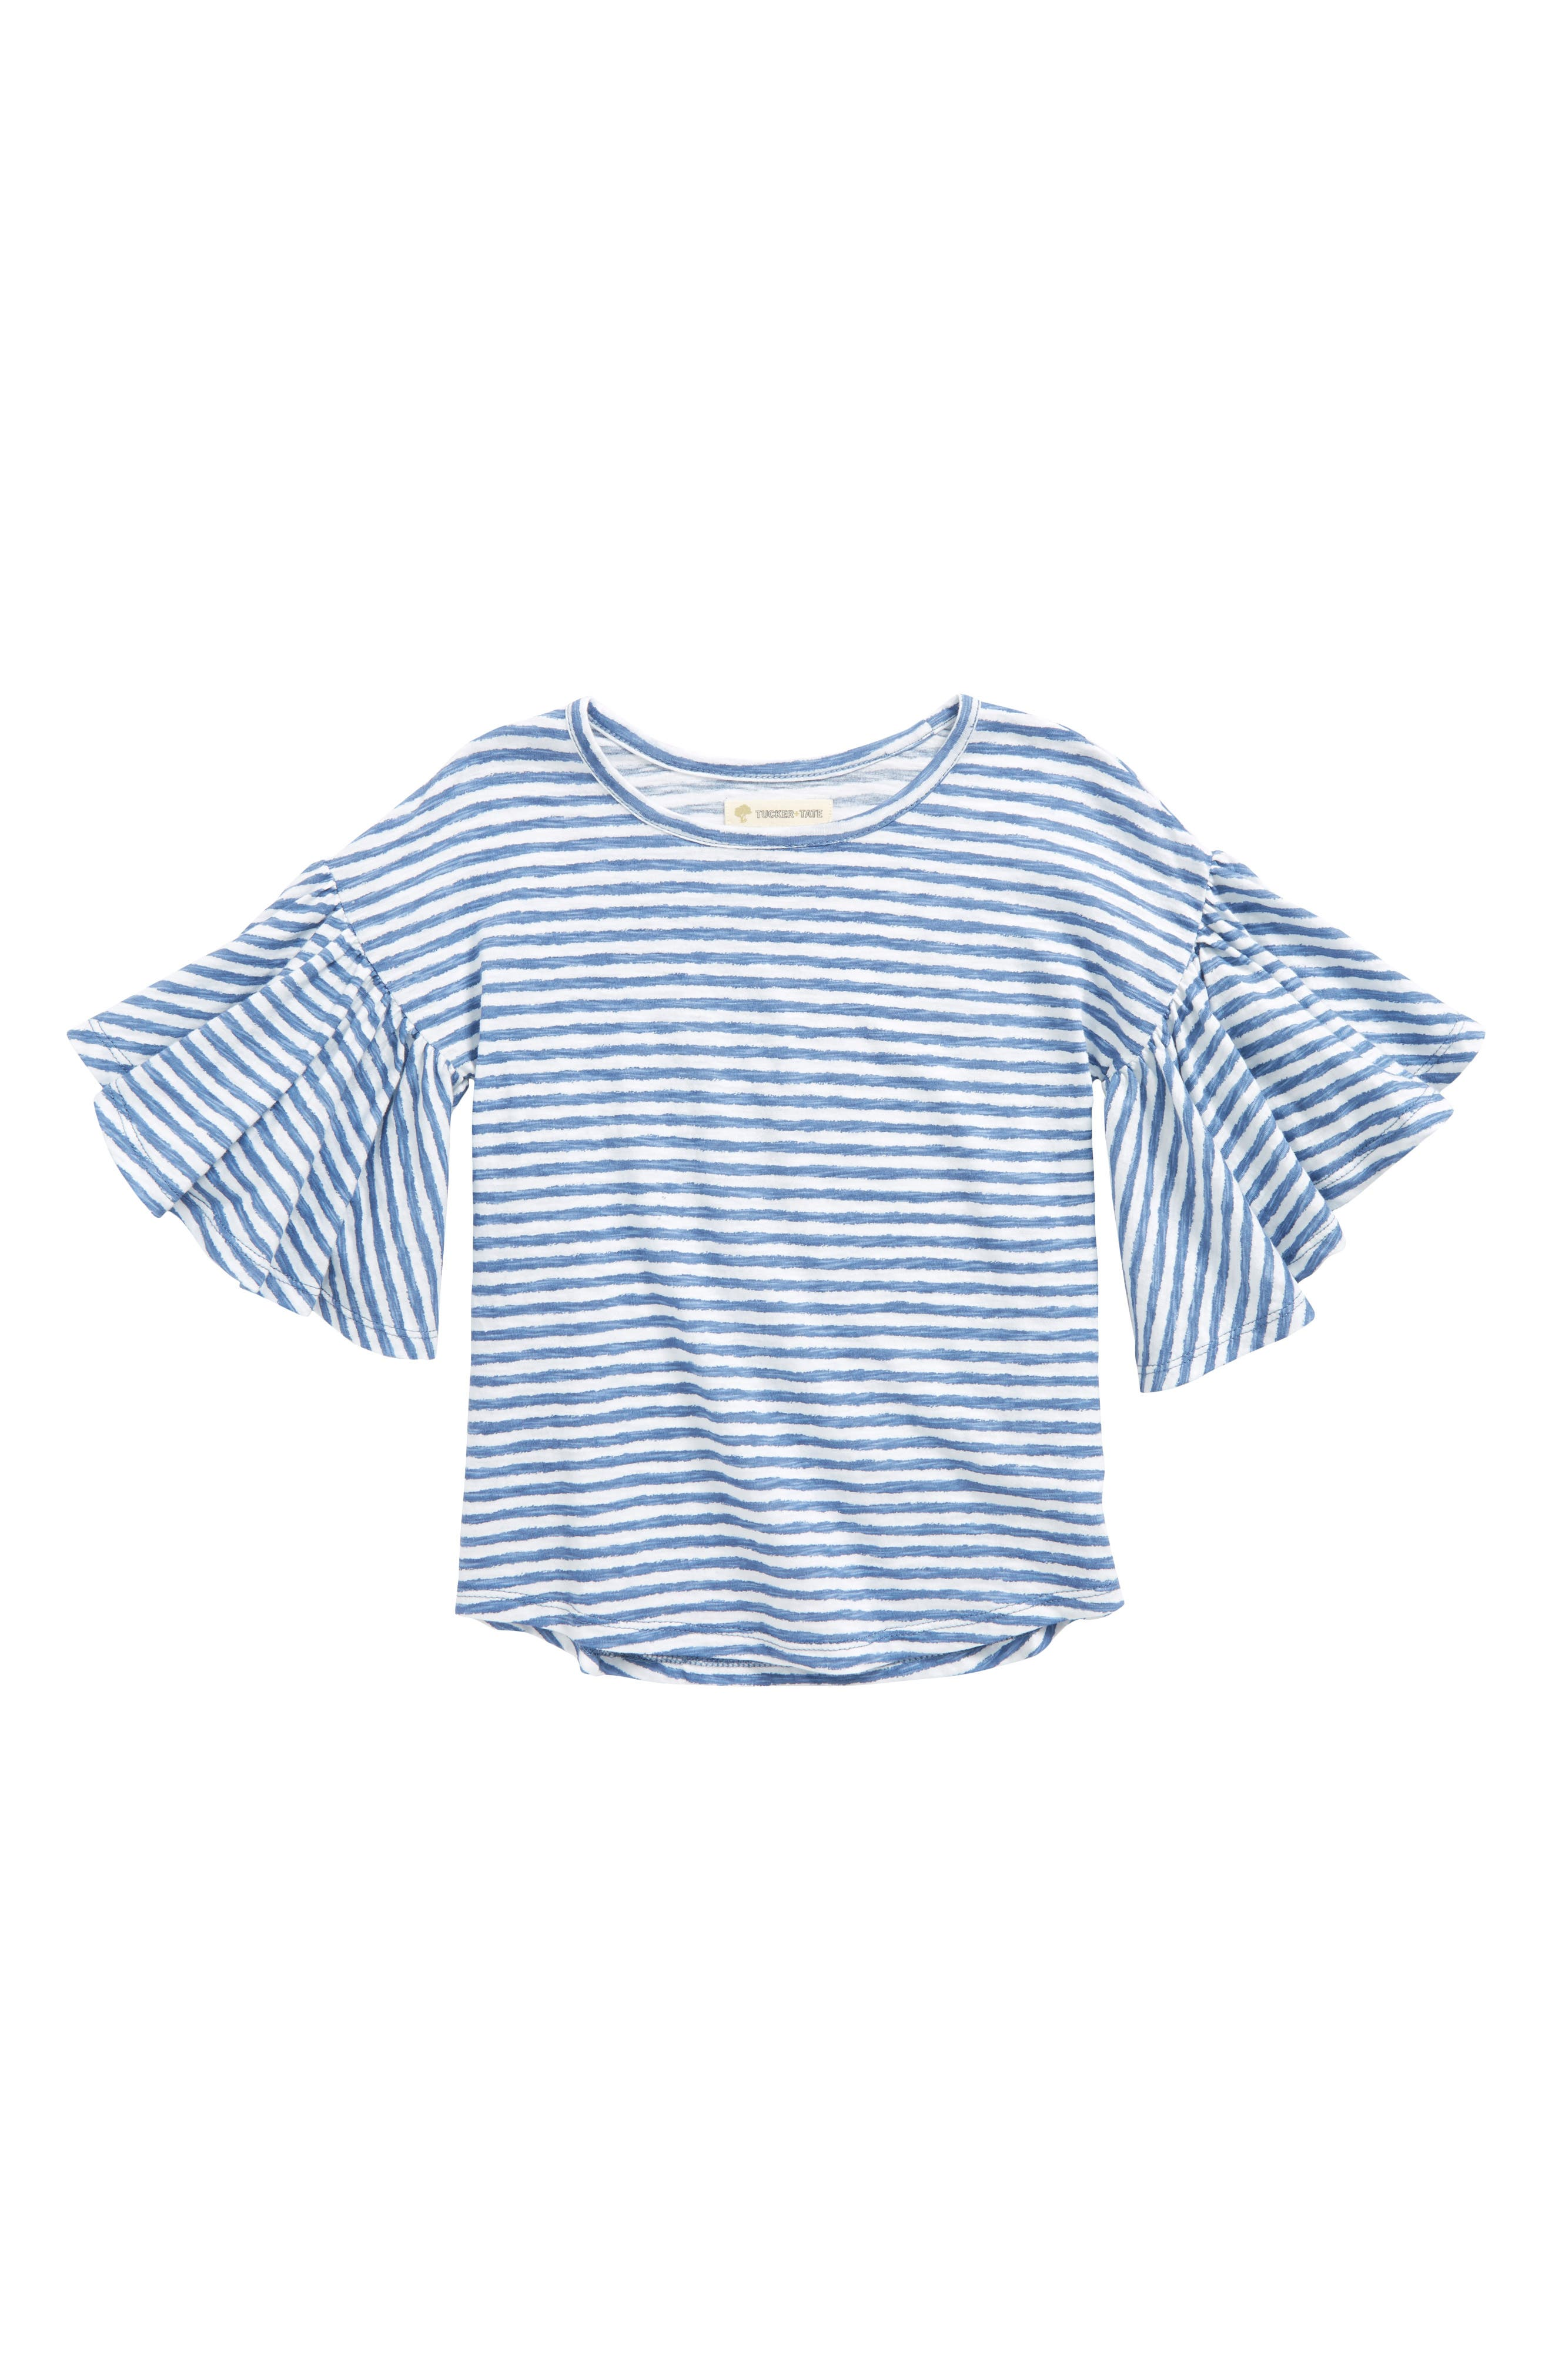 Tucker + Tate Ruffle Sleeve Top (Toddler Girls, Little Girls & Big Girls)